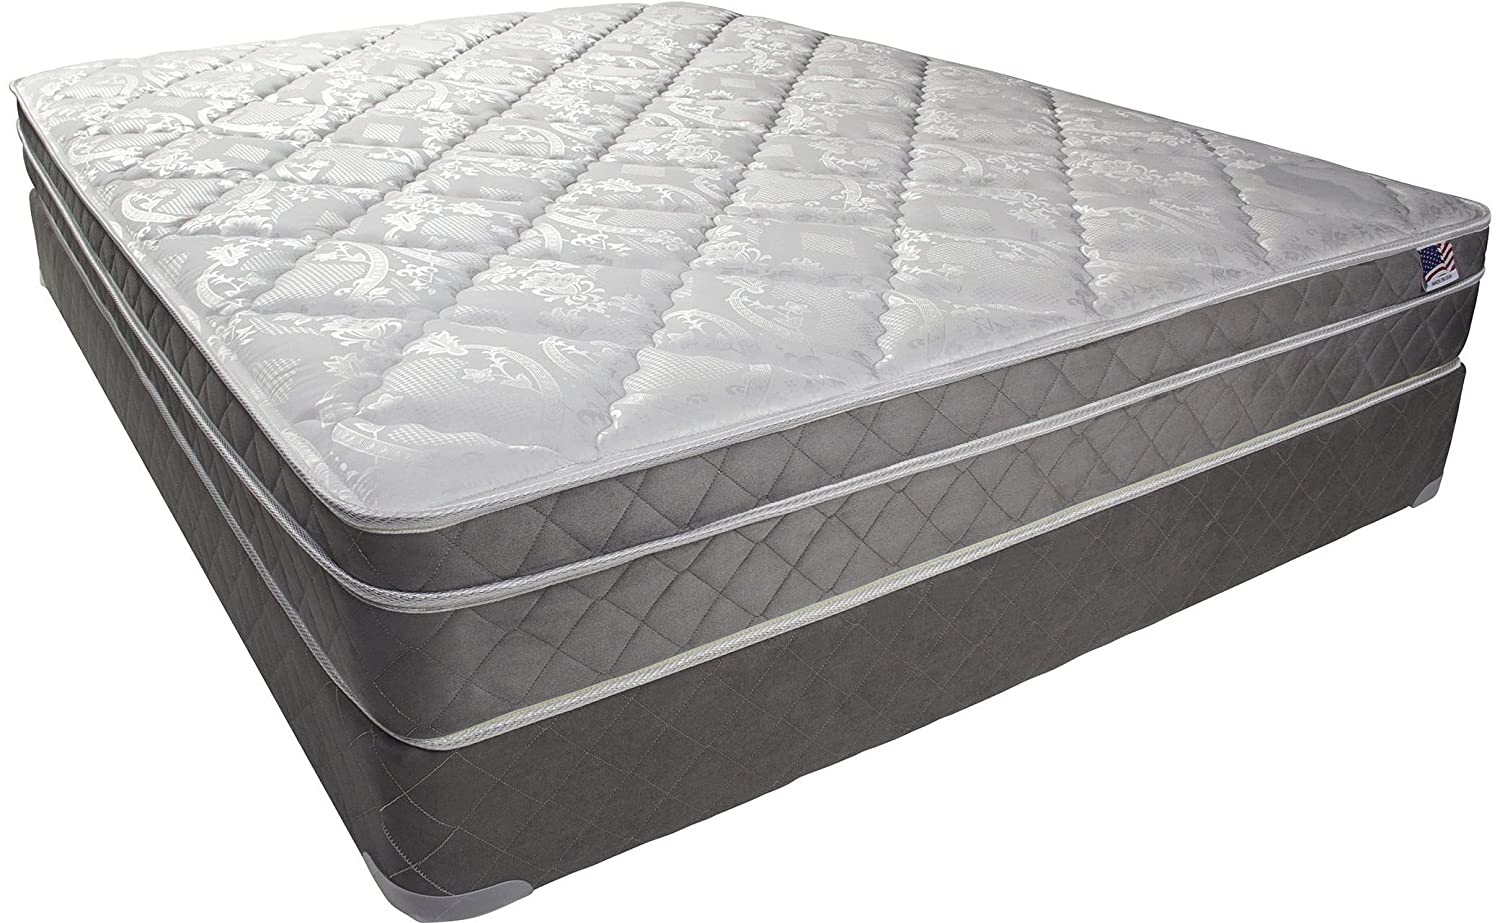 Furniture of America DM121Q-M Kalina 9 Euro Pillow Top Queen Mattress - White-Gray